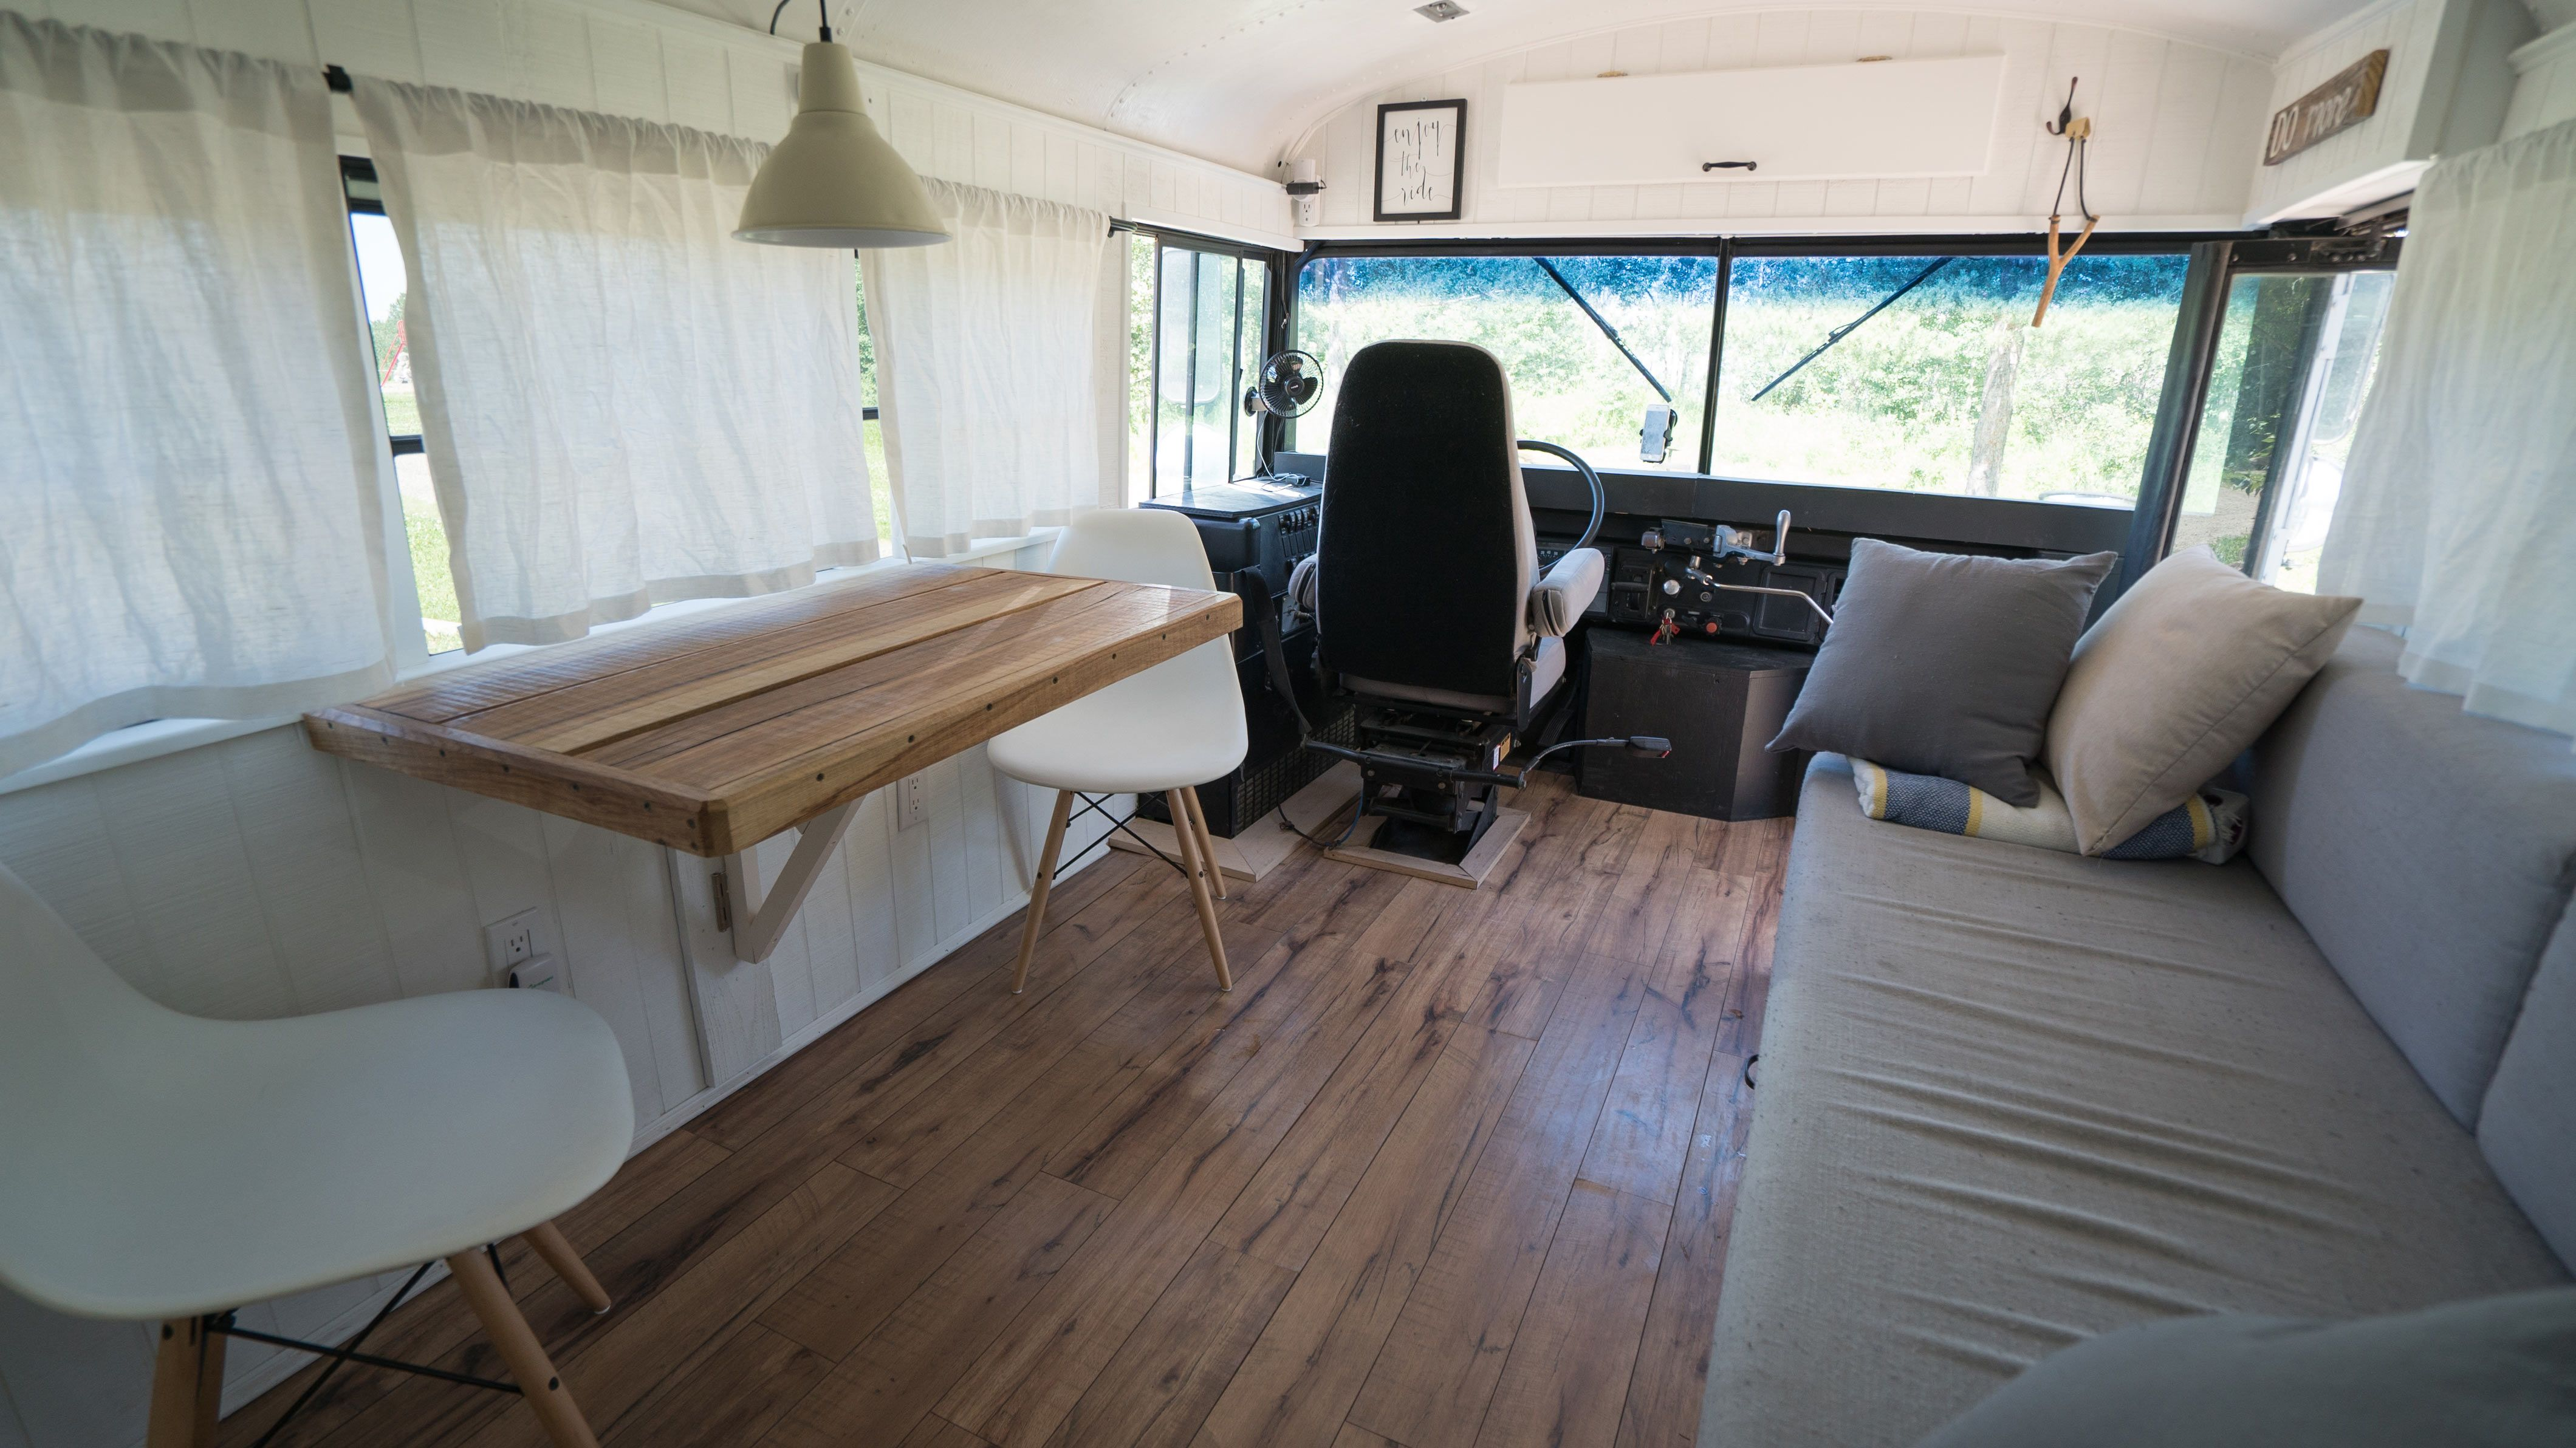 The Expedition Happiness Bus Expedition Happiness Tiny House Bedroom Tiny House Loft Modern Tiny House